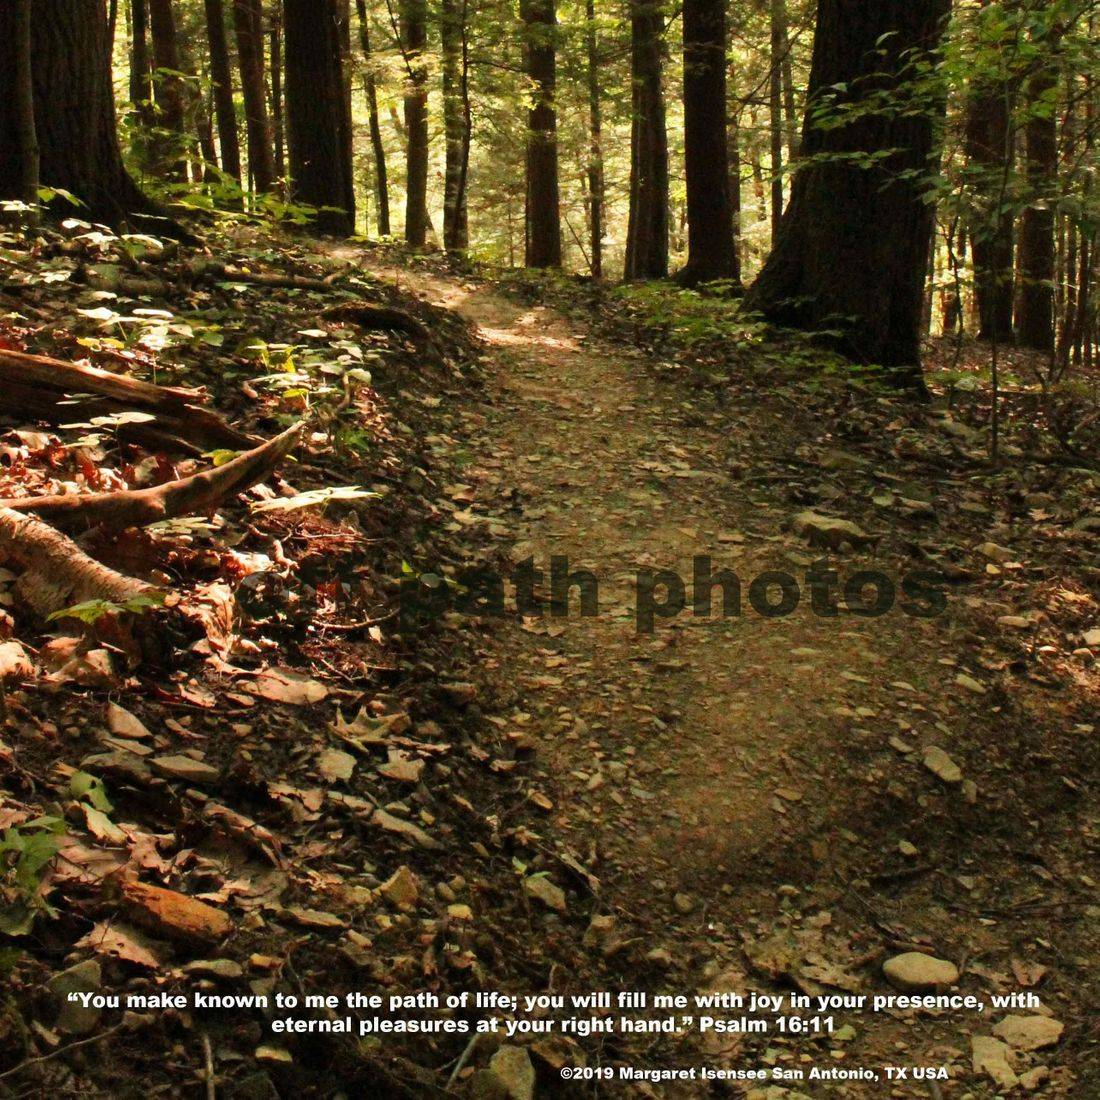 photography, forest, trees, nature, scripture, God, light, pathway, summer, relaxing